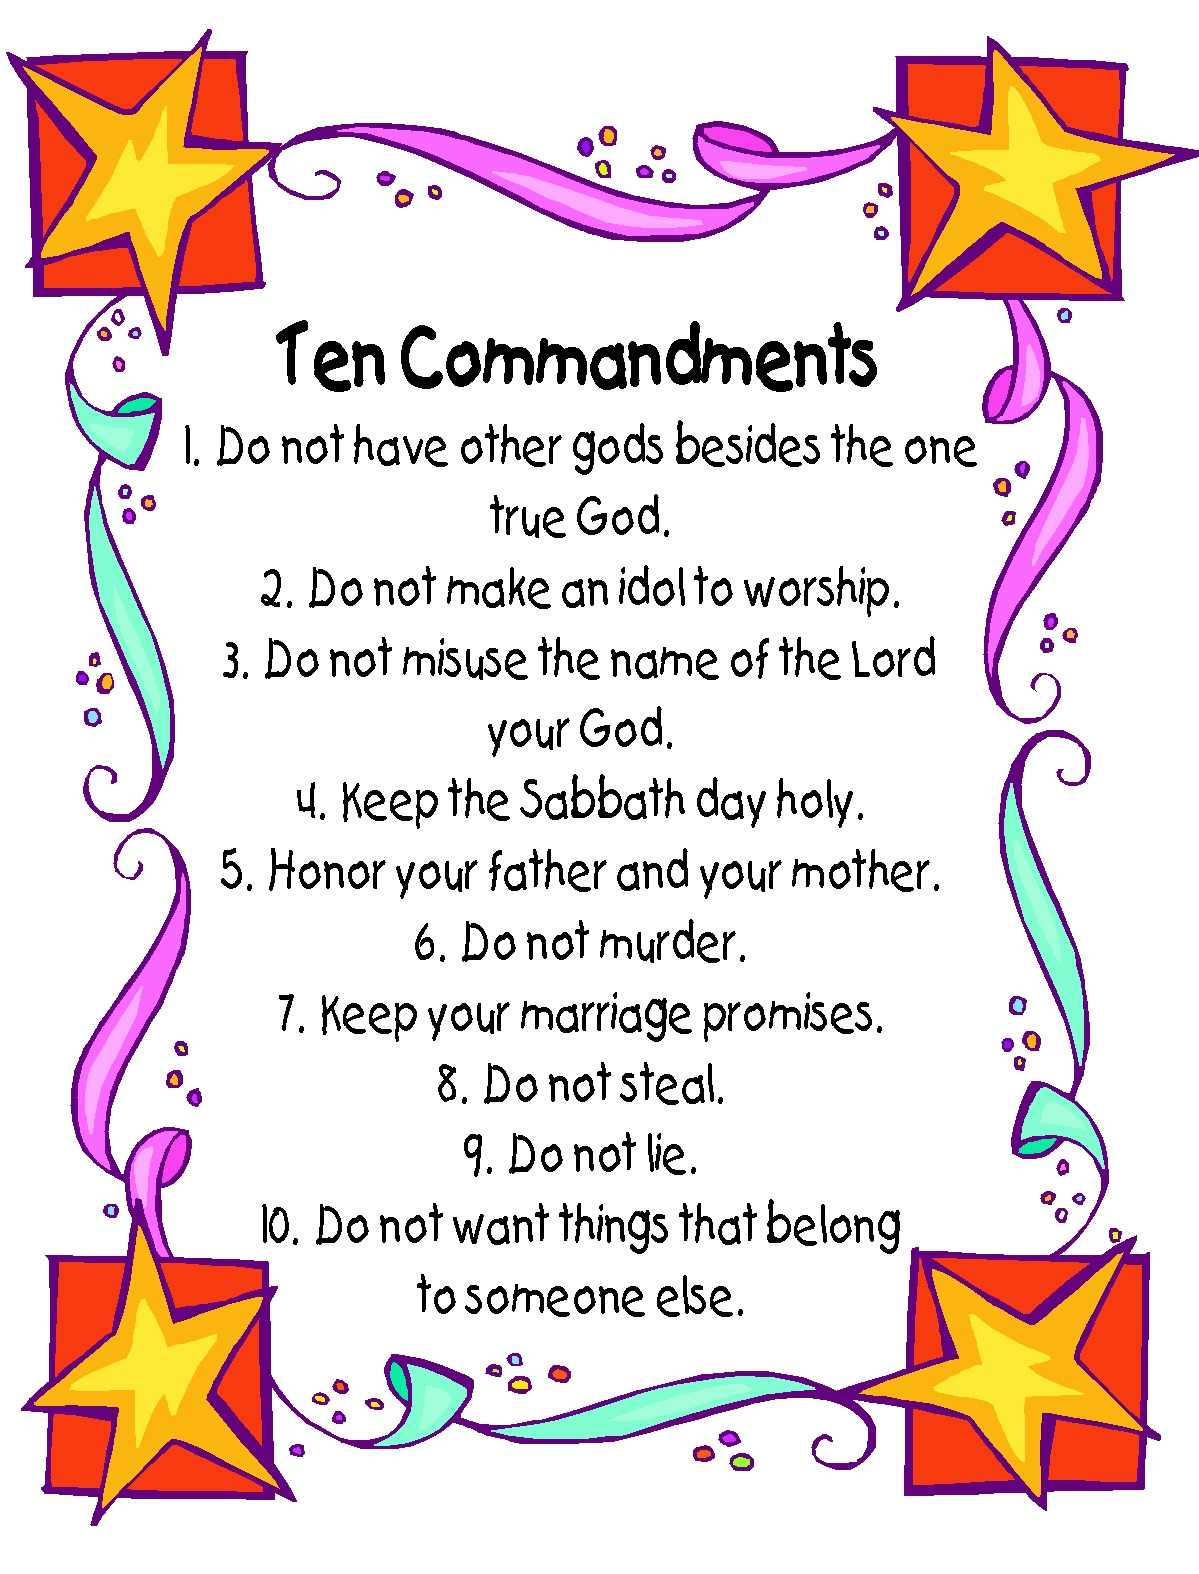 picture relating to 10 Commandments Printable referred to as 10 Commandments Poster free of charge printable youngster pleasant